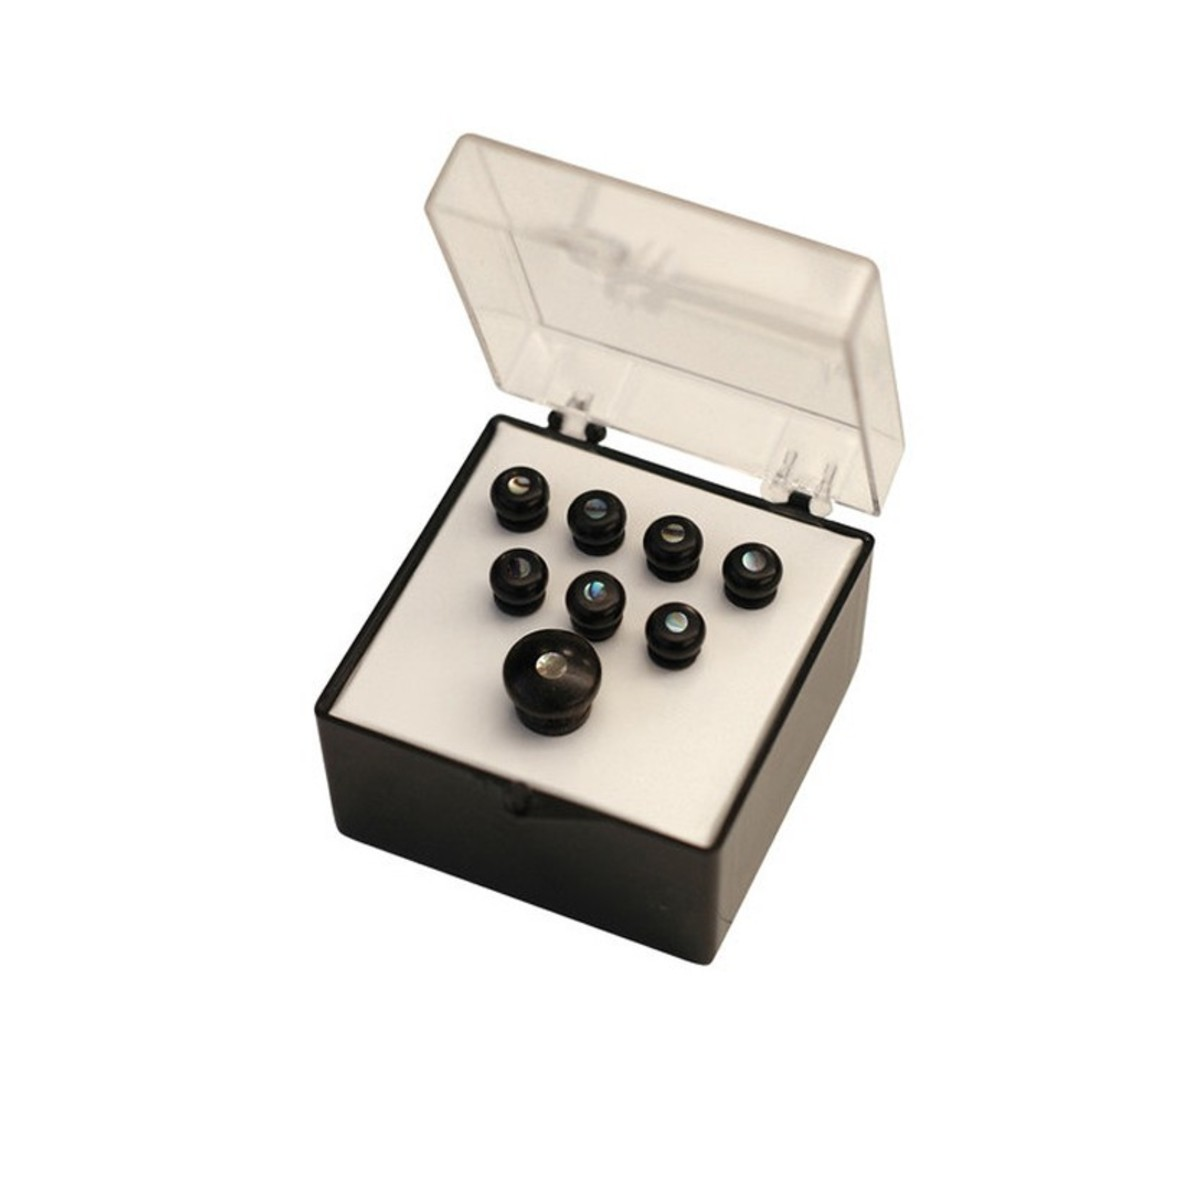 martin bridge pins set of 8 ebony w pearl inlay at gear4music. Black Bedroom Furniture Sets. Home Design Ideas